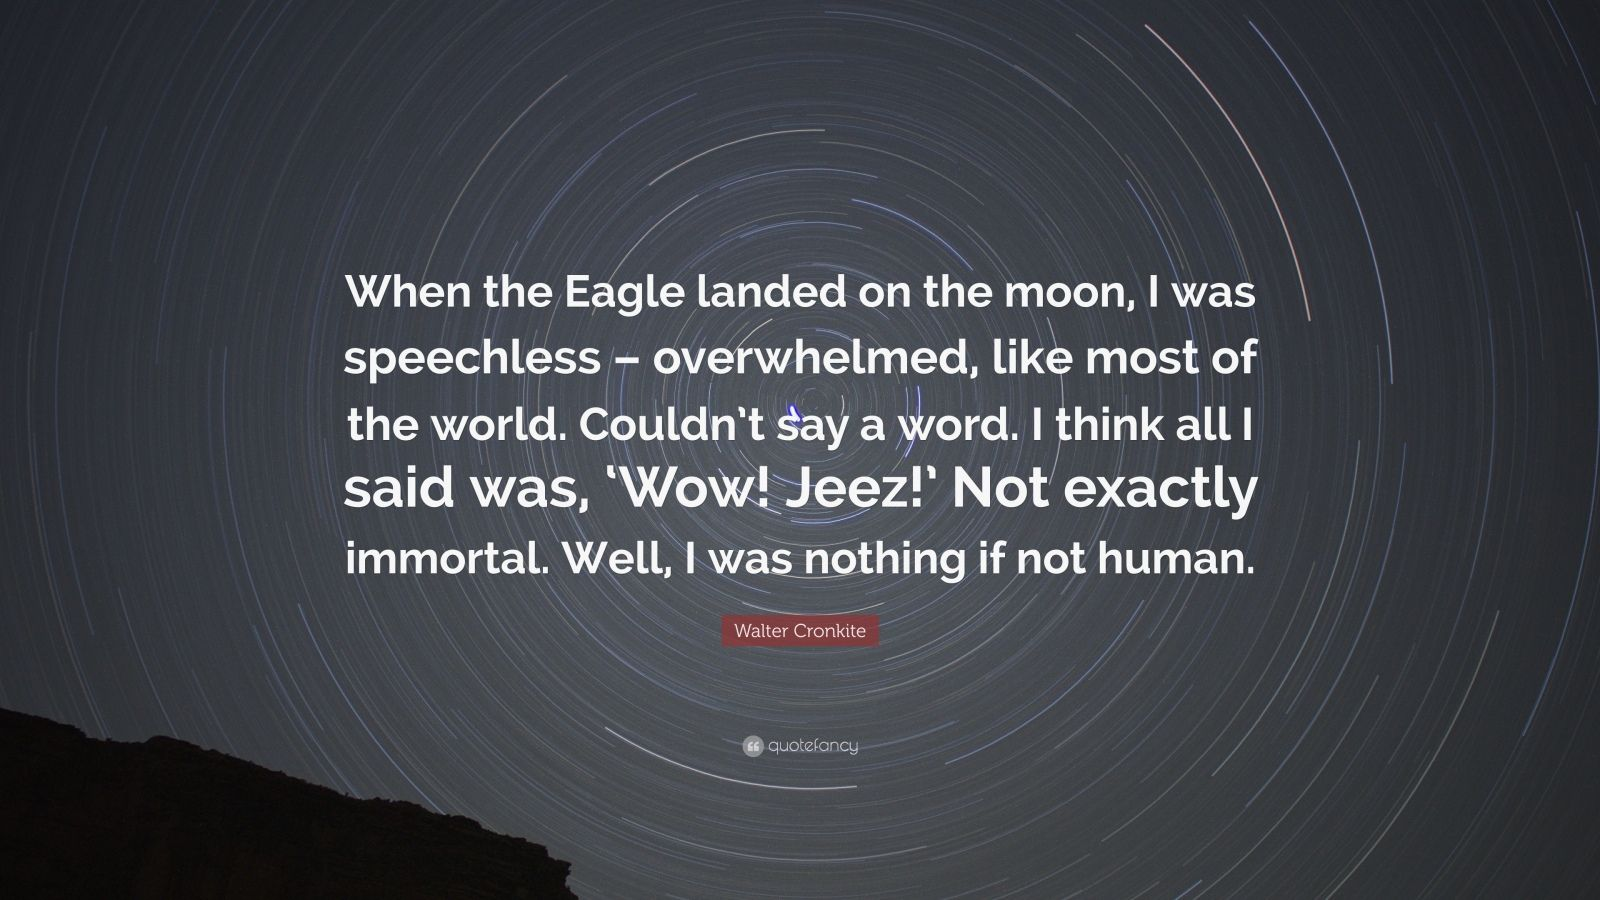 """Walter Cronkite Quote: """"When the Eagle landed on the moon, I was speechless – overwhelmed, like most of the world. Couldn't say a word. I think all I said was, 'Wow! Jeez!' Not exactly immortal. Well, I was nothing if not human."""""""